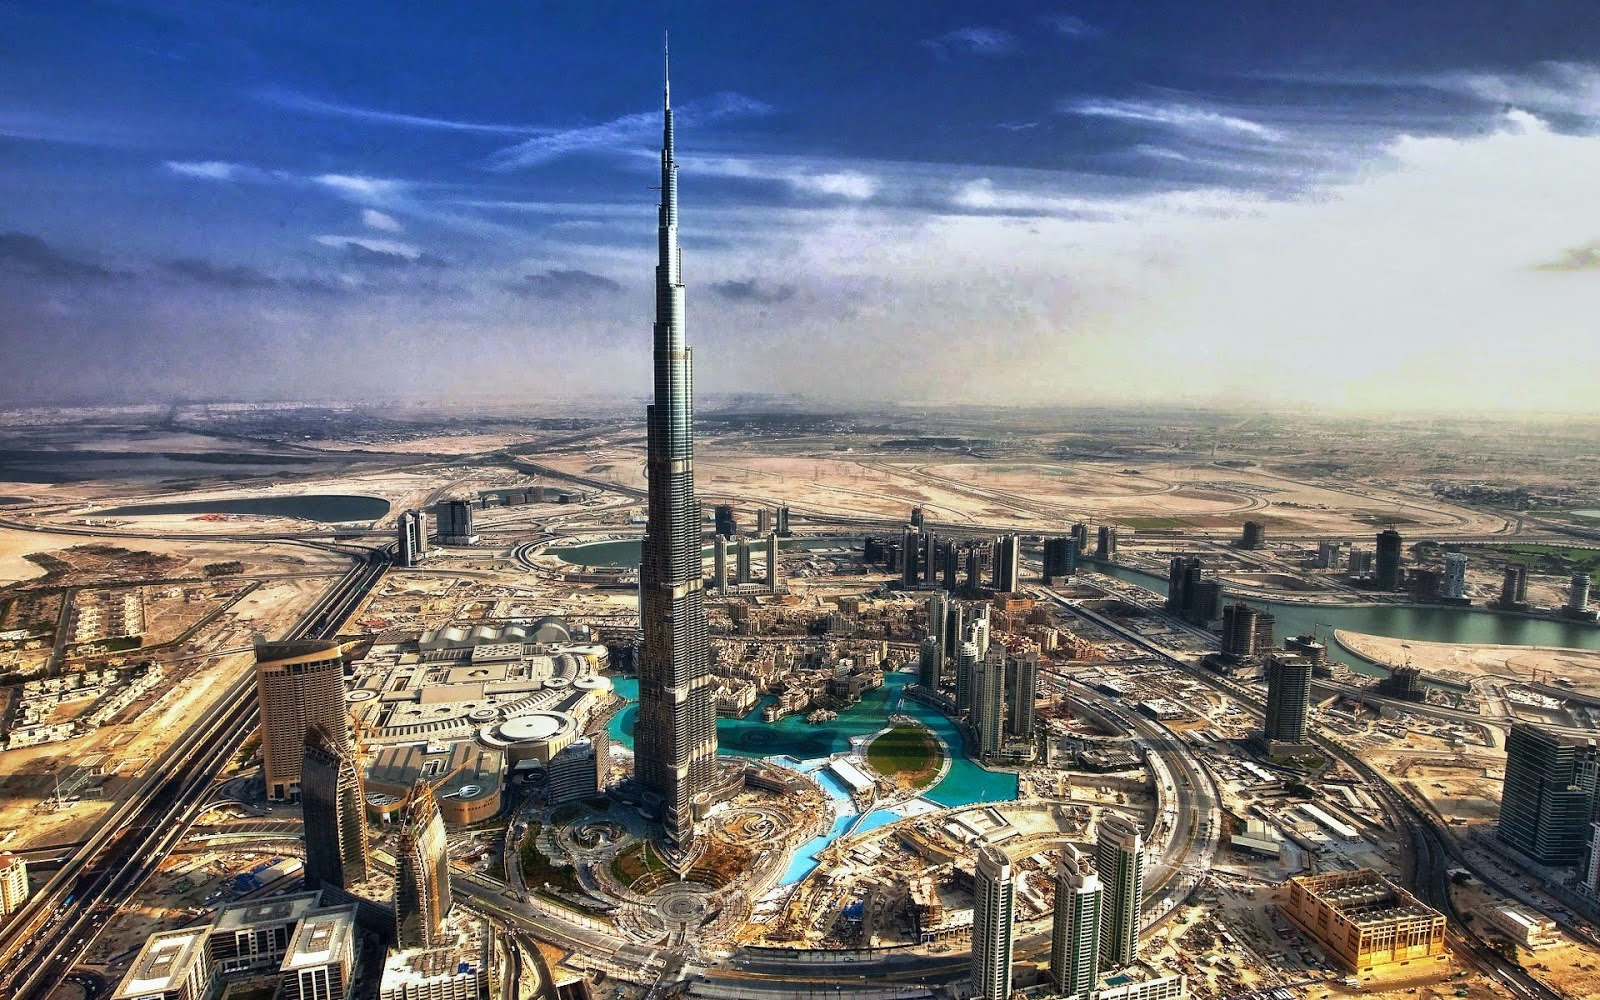 Indians have invested a whopping amount of USD6.4 billion in Dubai real estate market.